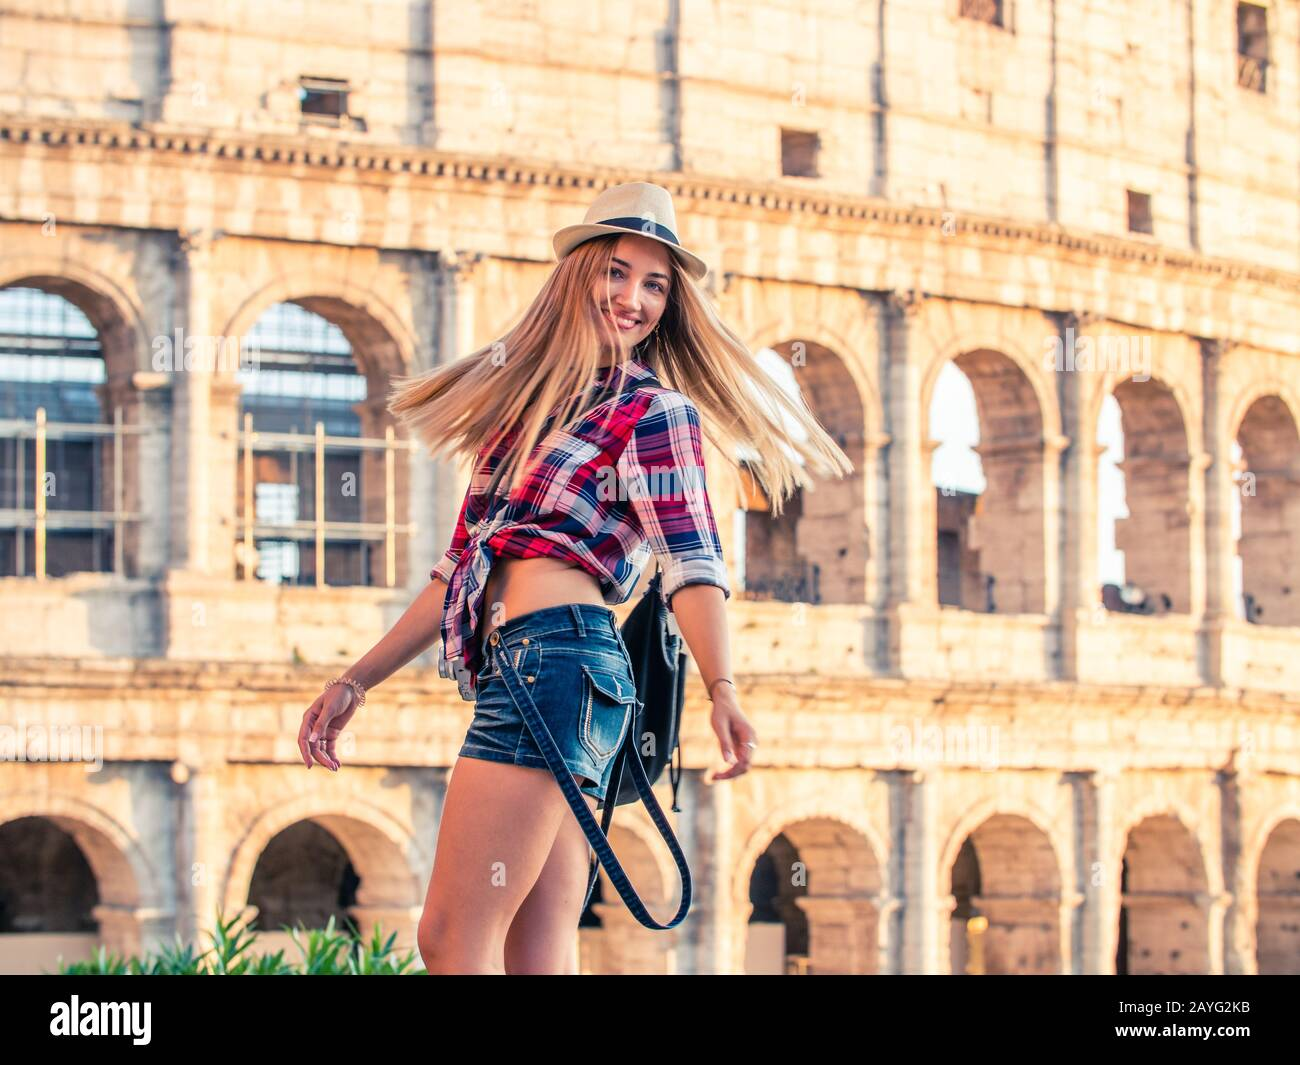 Beautiful young blonde woman with blue at colosseum smiling. Large hat and squared shirt. Rome, Italy Stock Photo